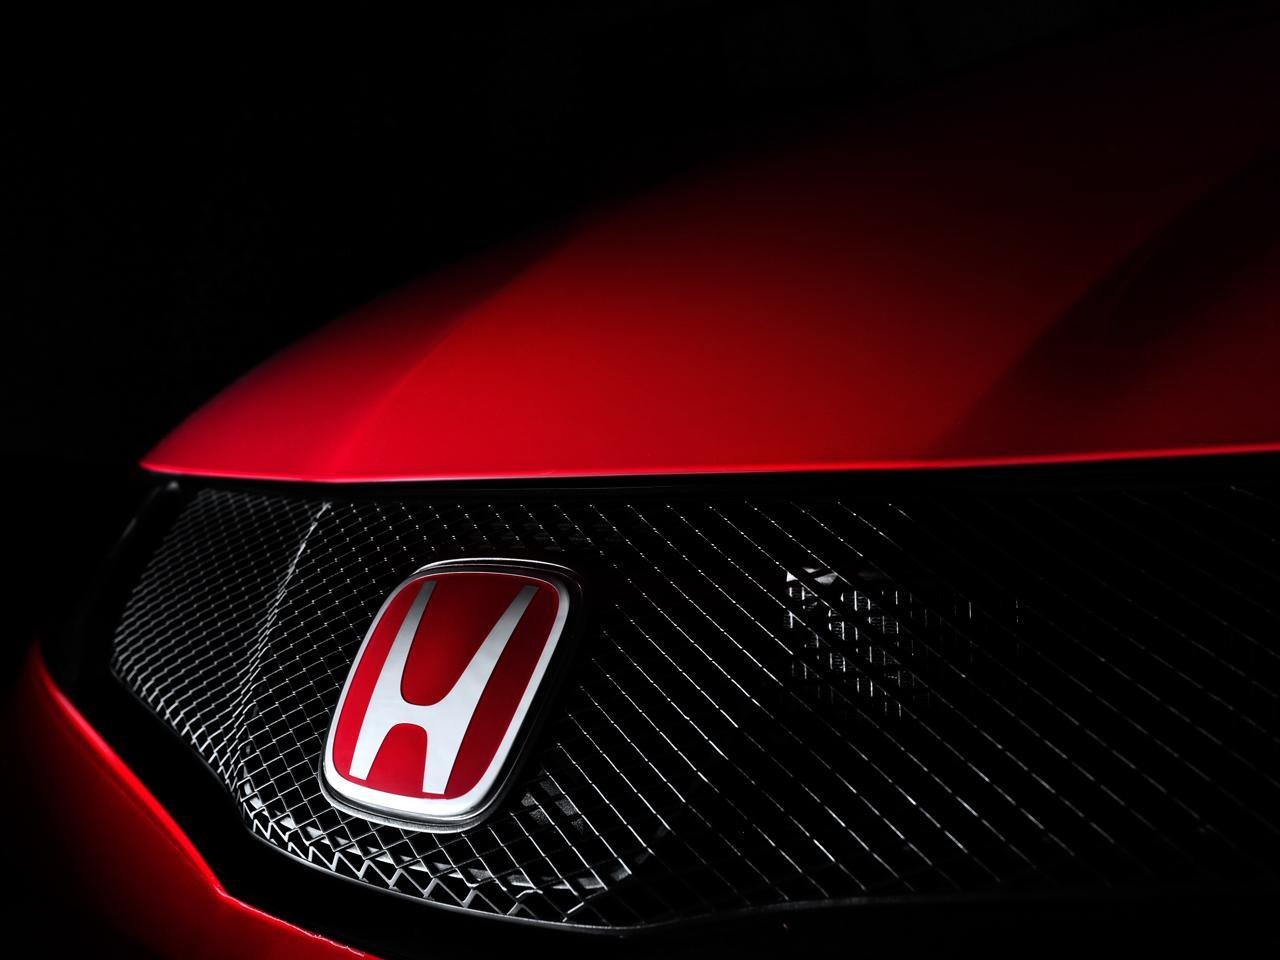 civic wallpaper honda symbol - photo #4